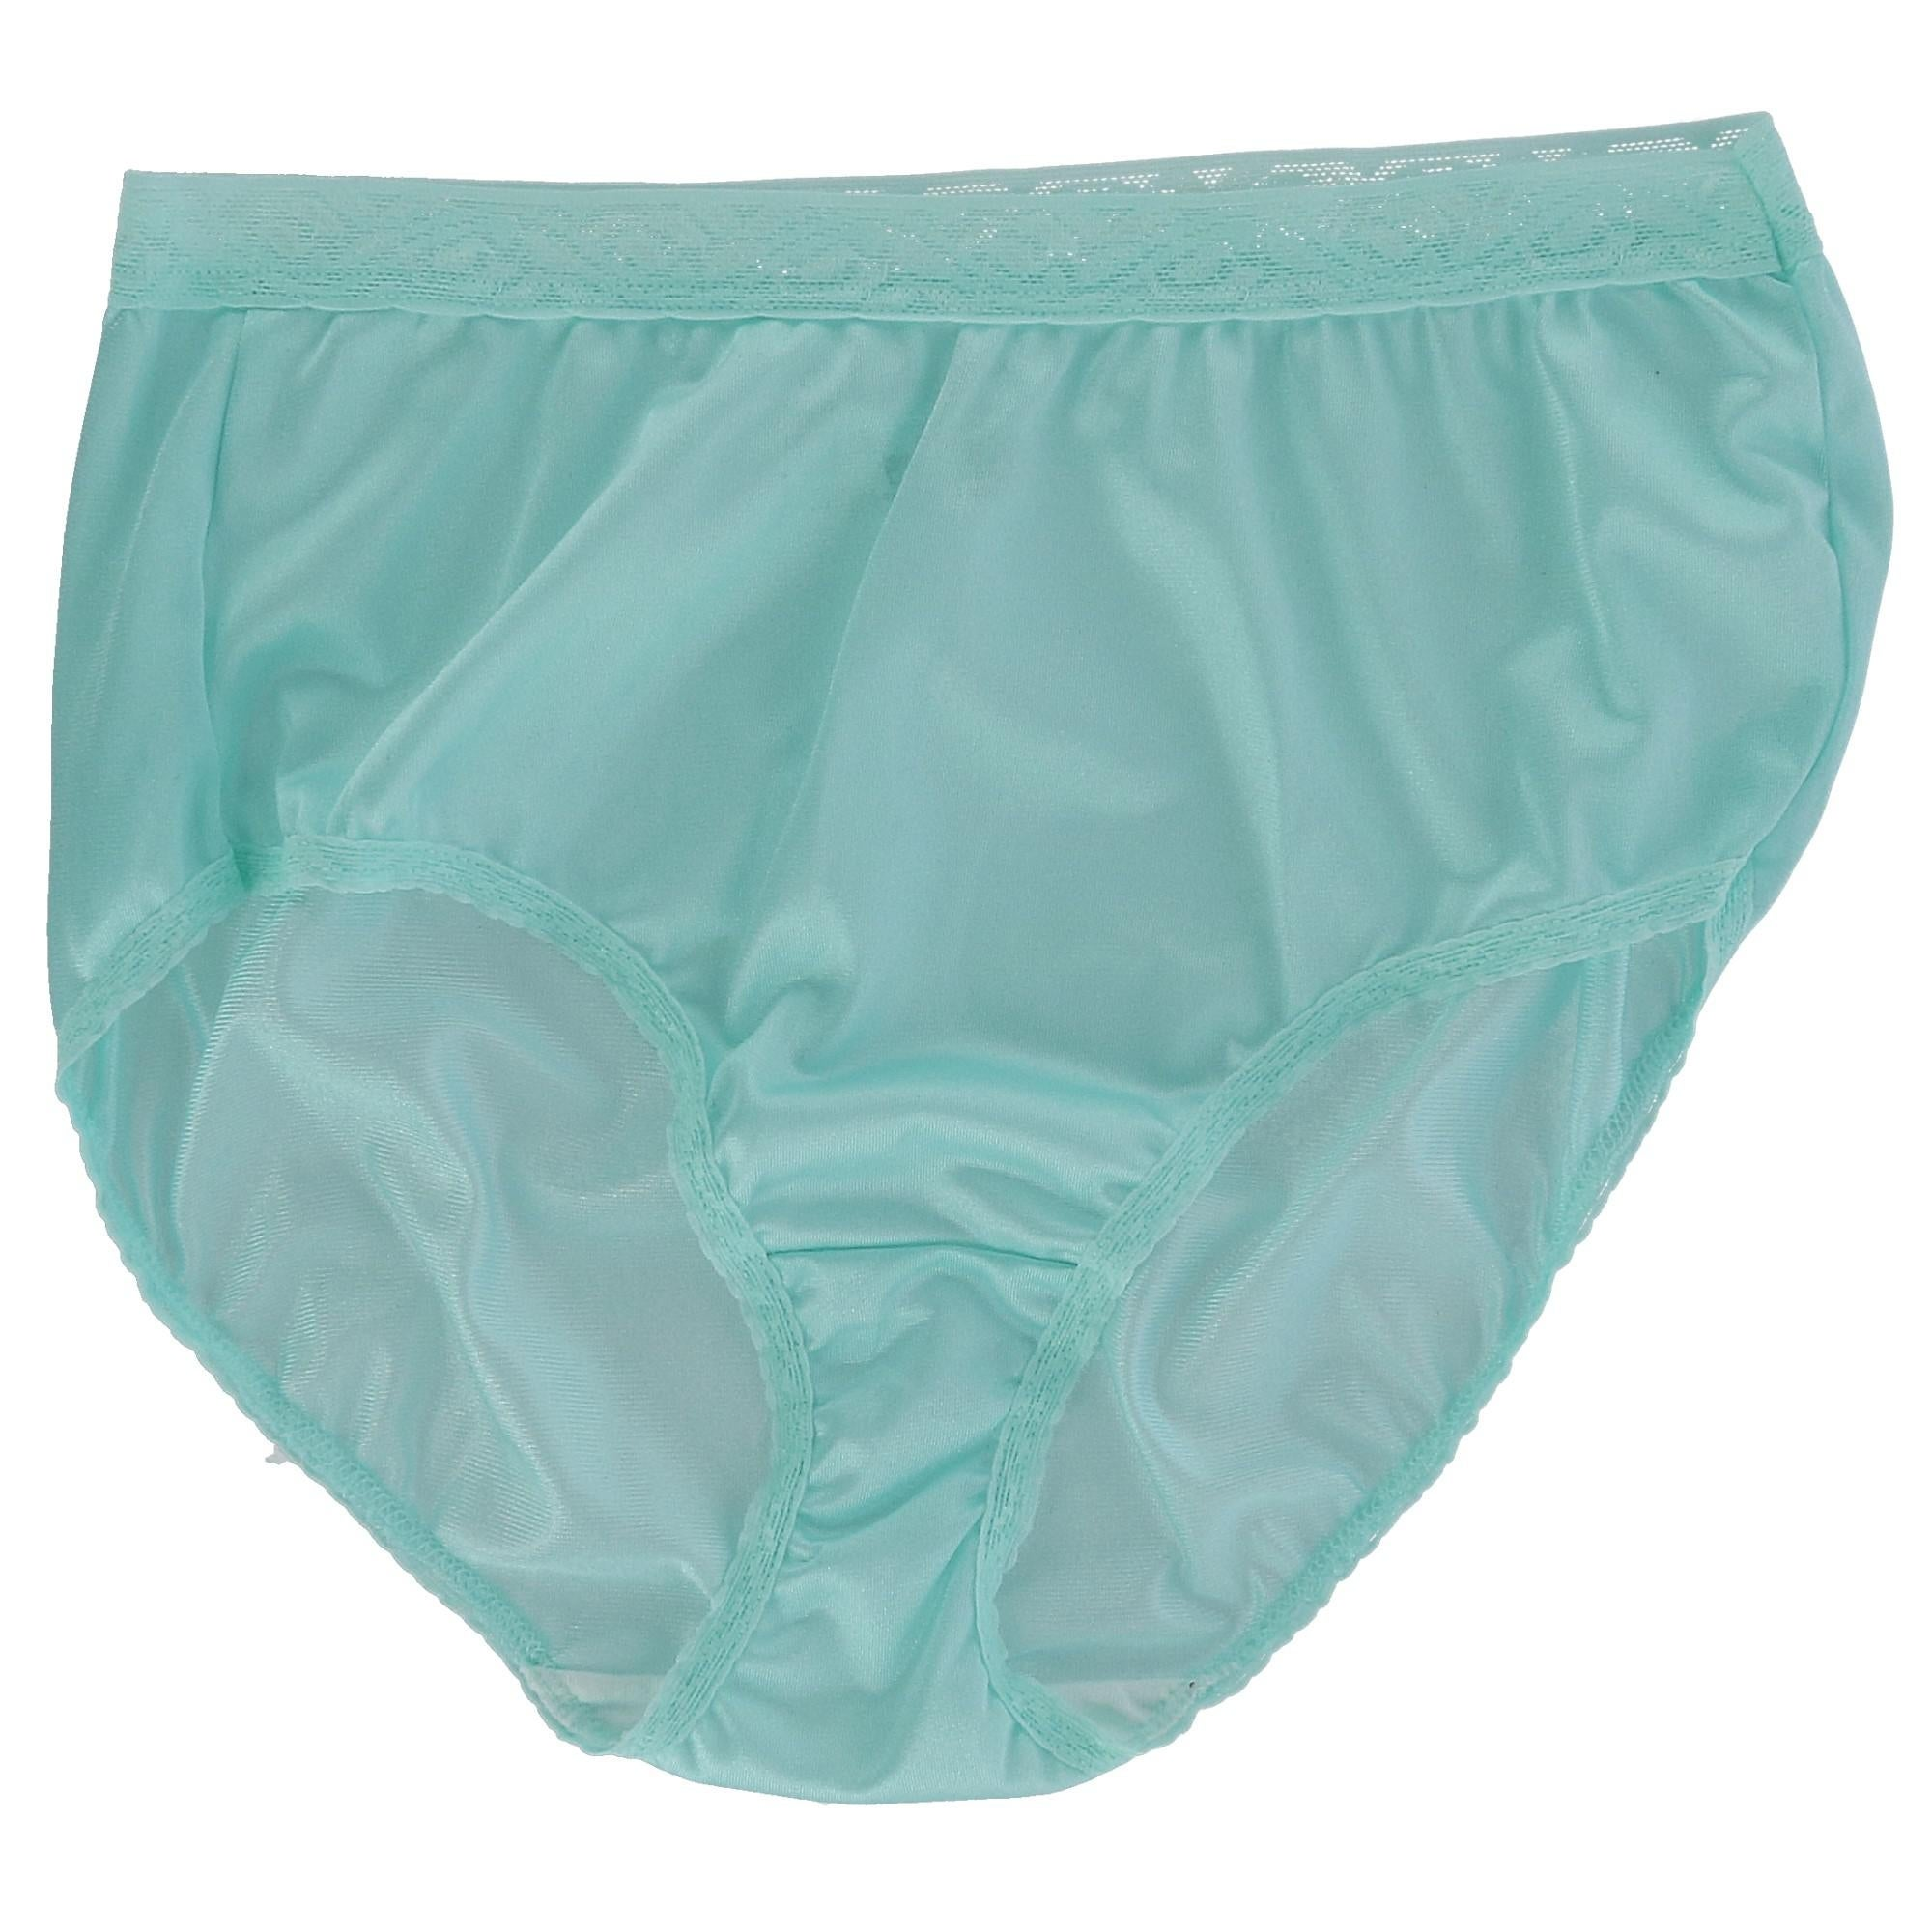 Fruit of the Loom Womens Womens 6 Pack Nylon White Brief Briefs